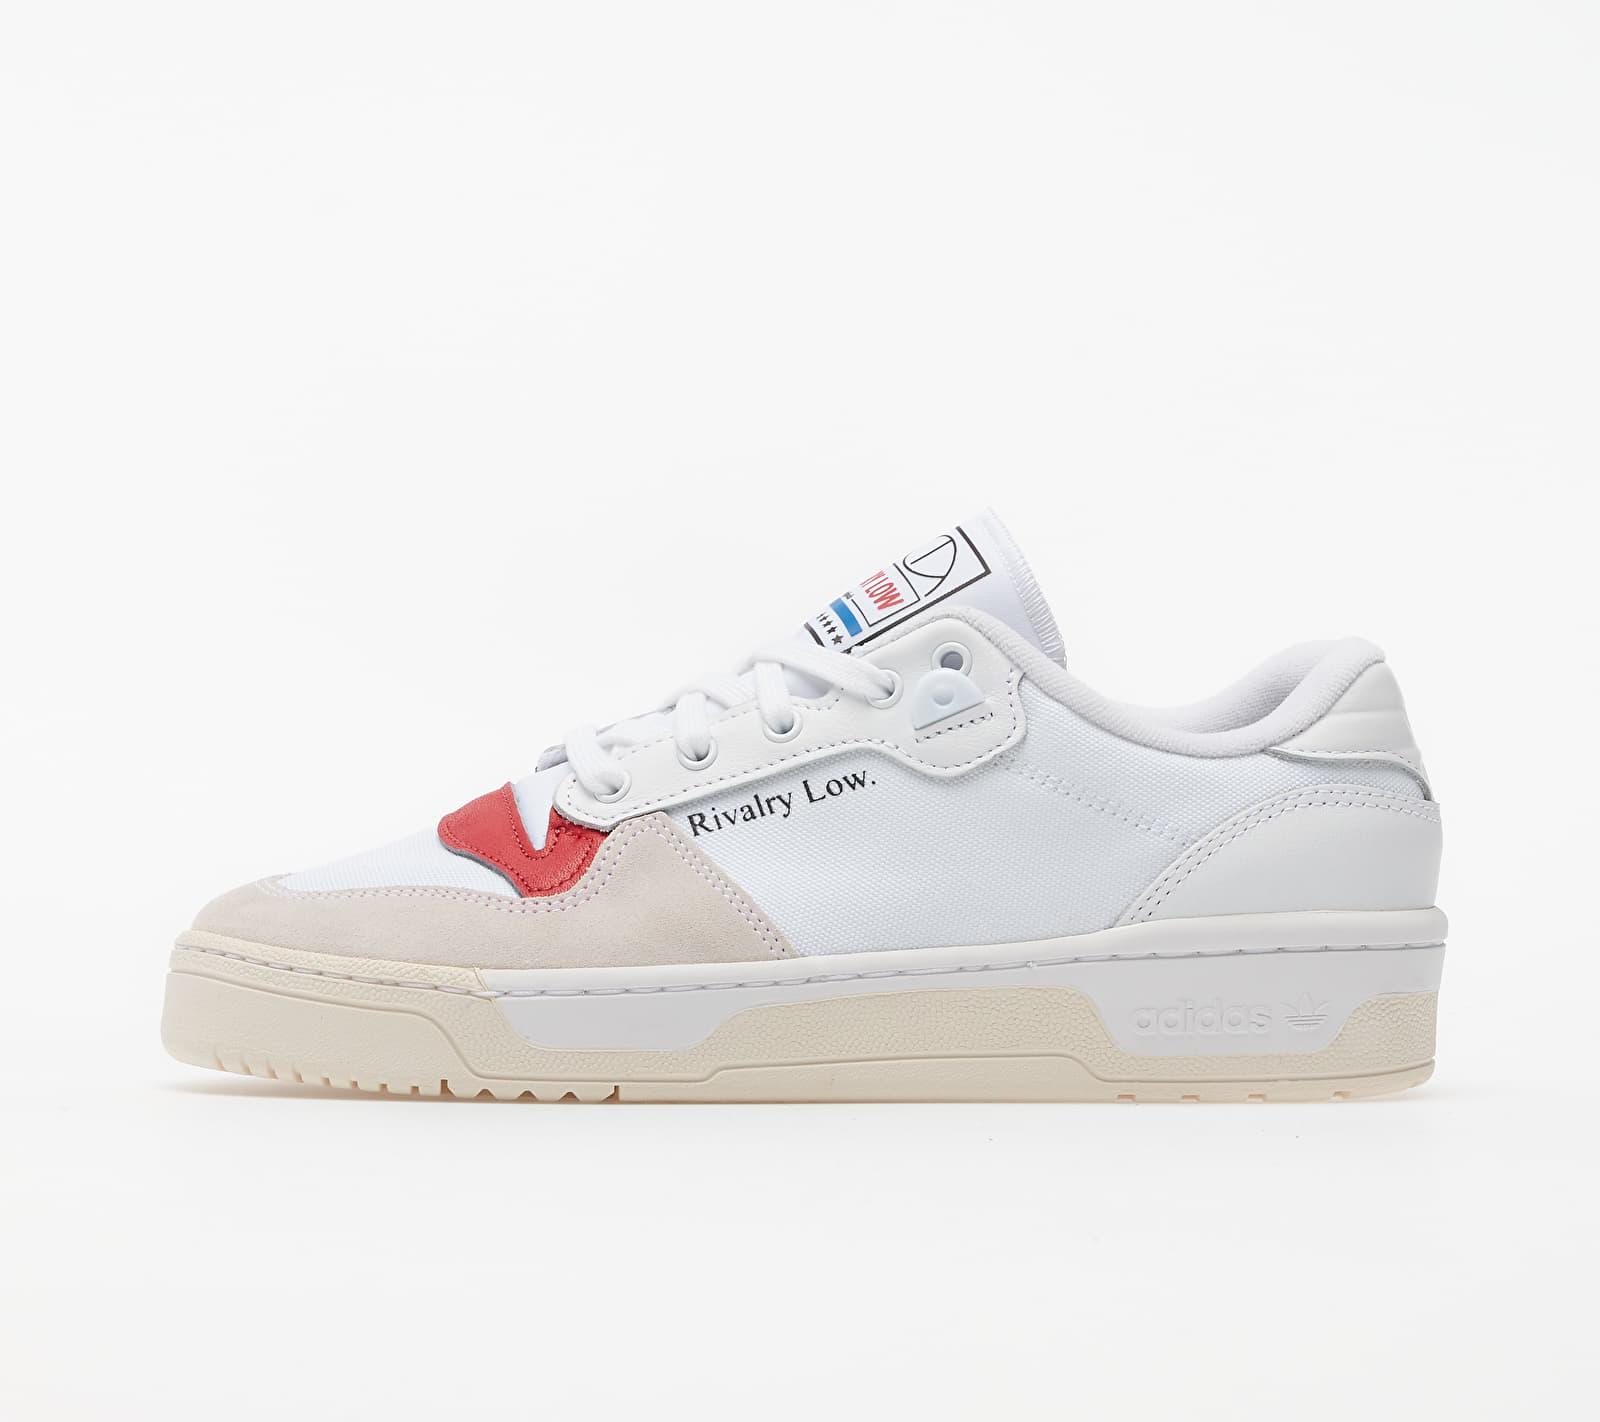 adidas Rivalry Low Ftw White/ Core White/ Glow Red EF6418